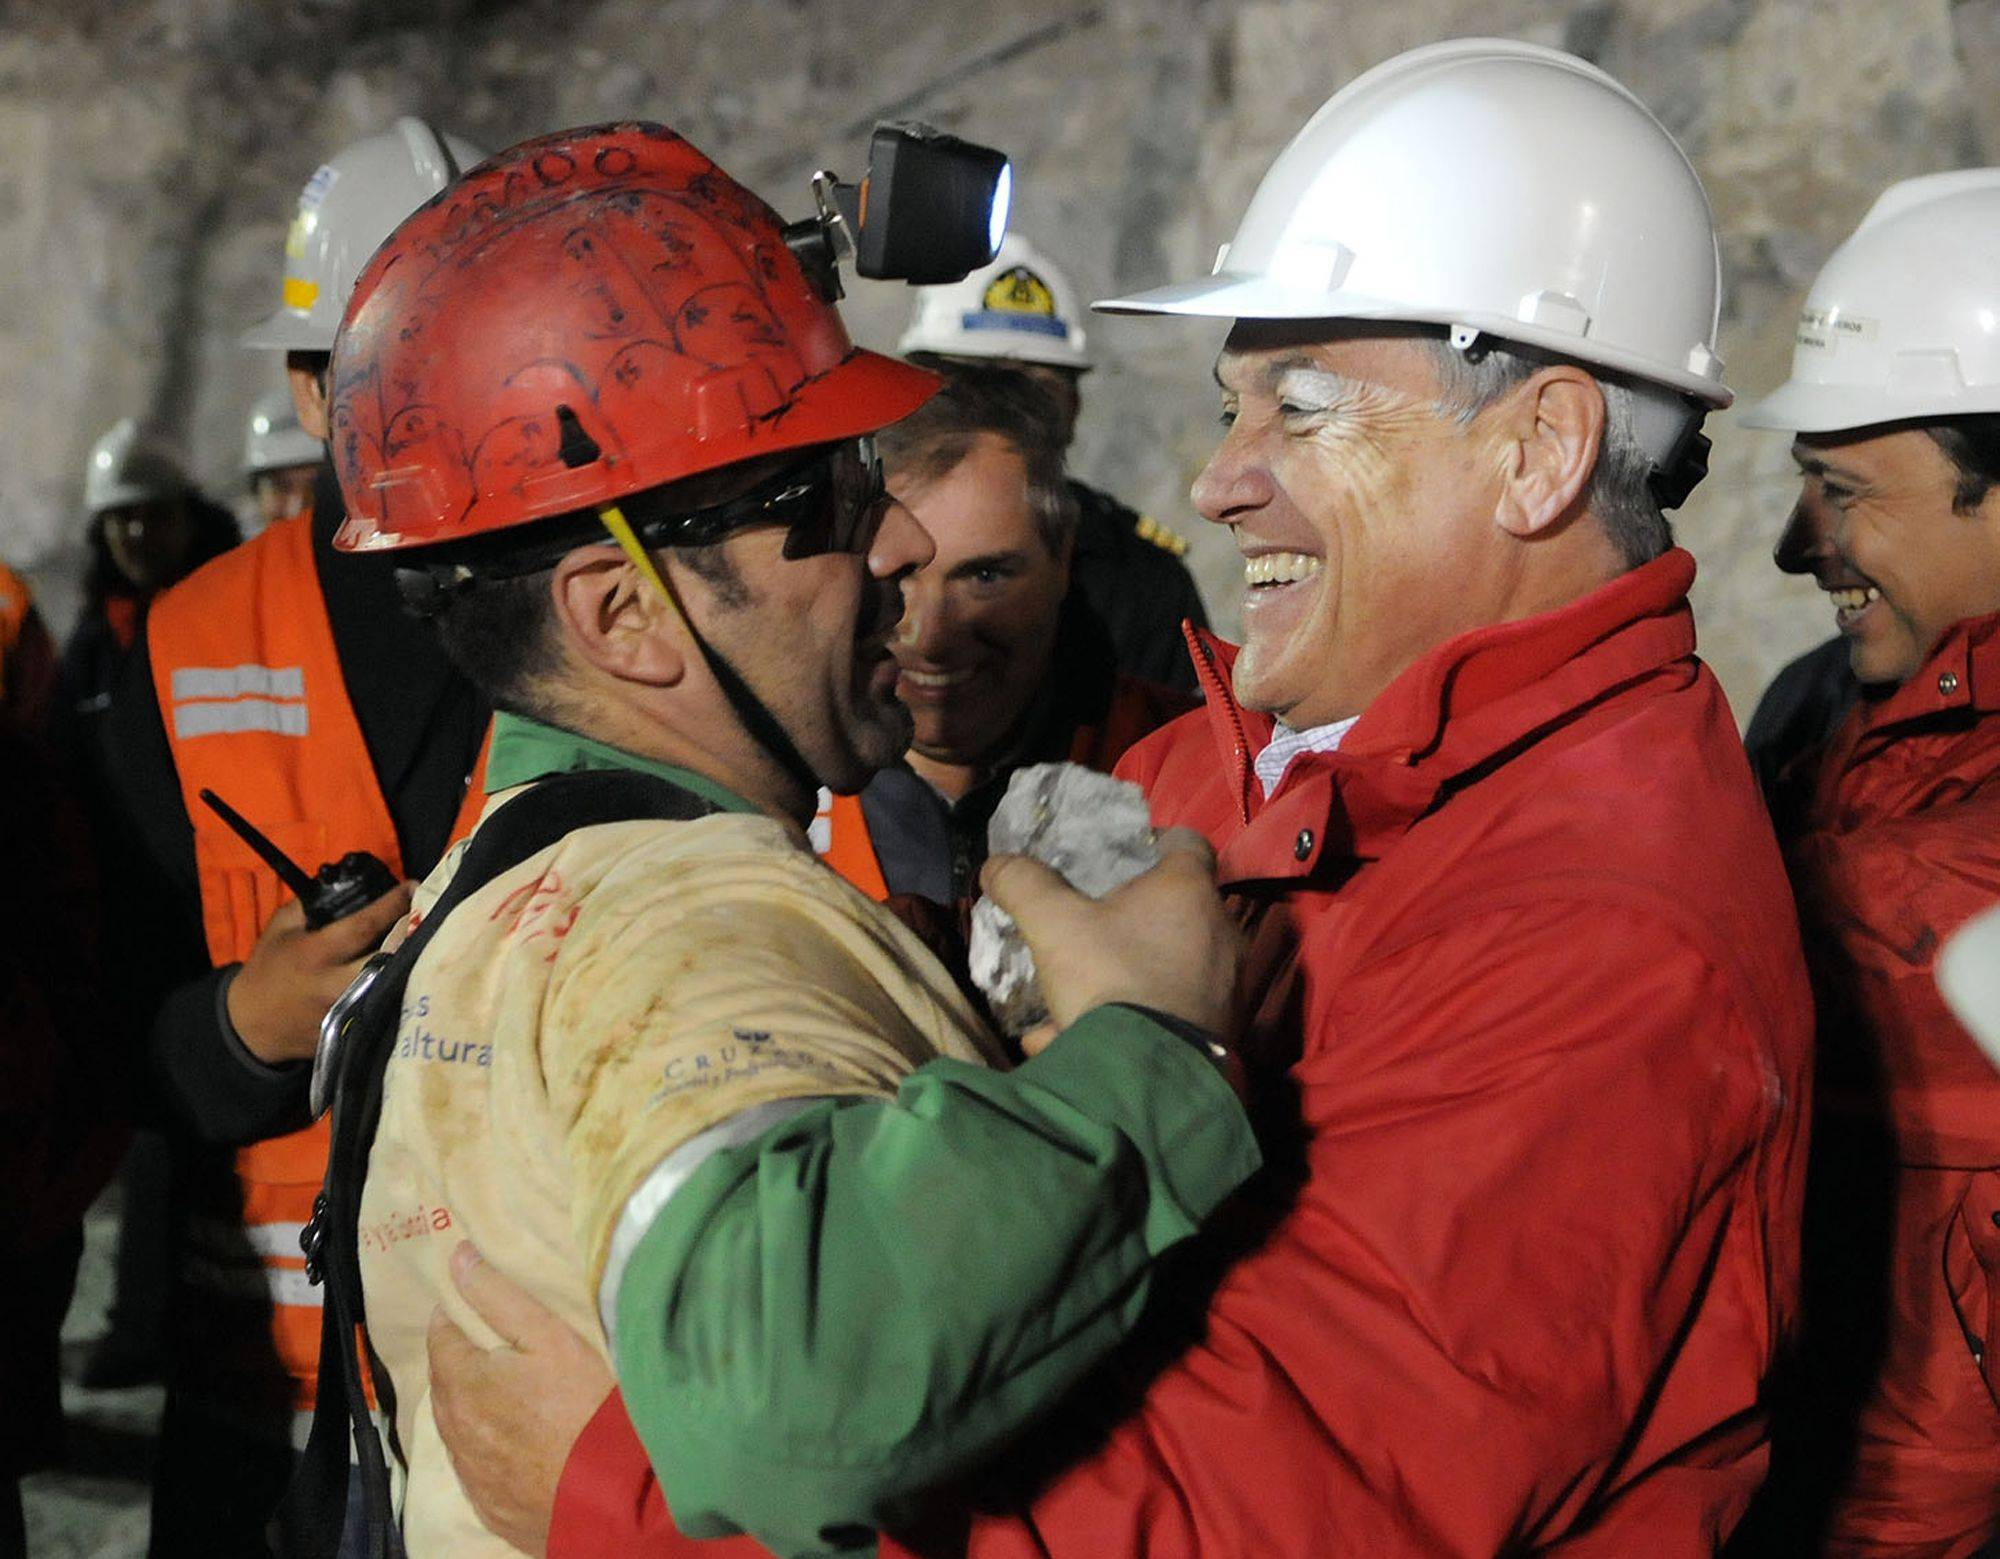 In this photo released by the Chilean presidential press office, Chile's President Sebastian Pinera, right, hugs rescued miner Mario Sepulveda after Sepulveda was rescued from the collapsed San Jose gold and copper mine where he was trapped with 32 other miners for over two months near Copiapo, Chile, early Wednesday, Oct. 13, 2010.